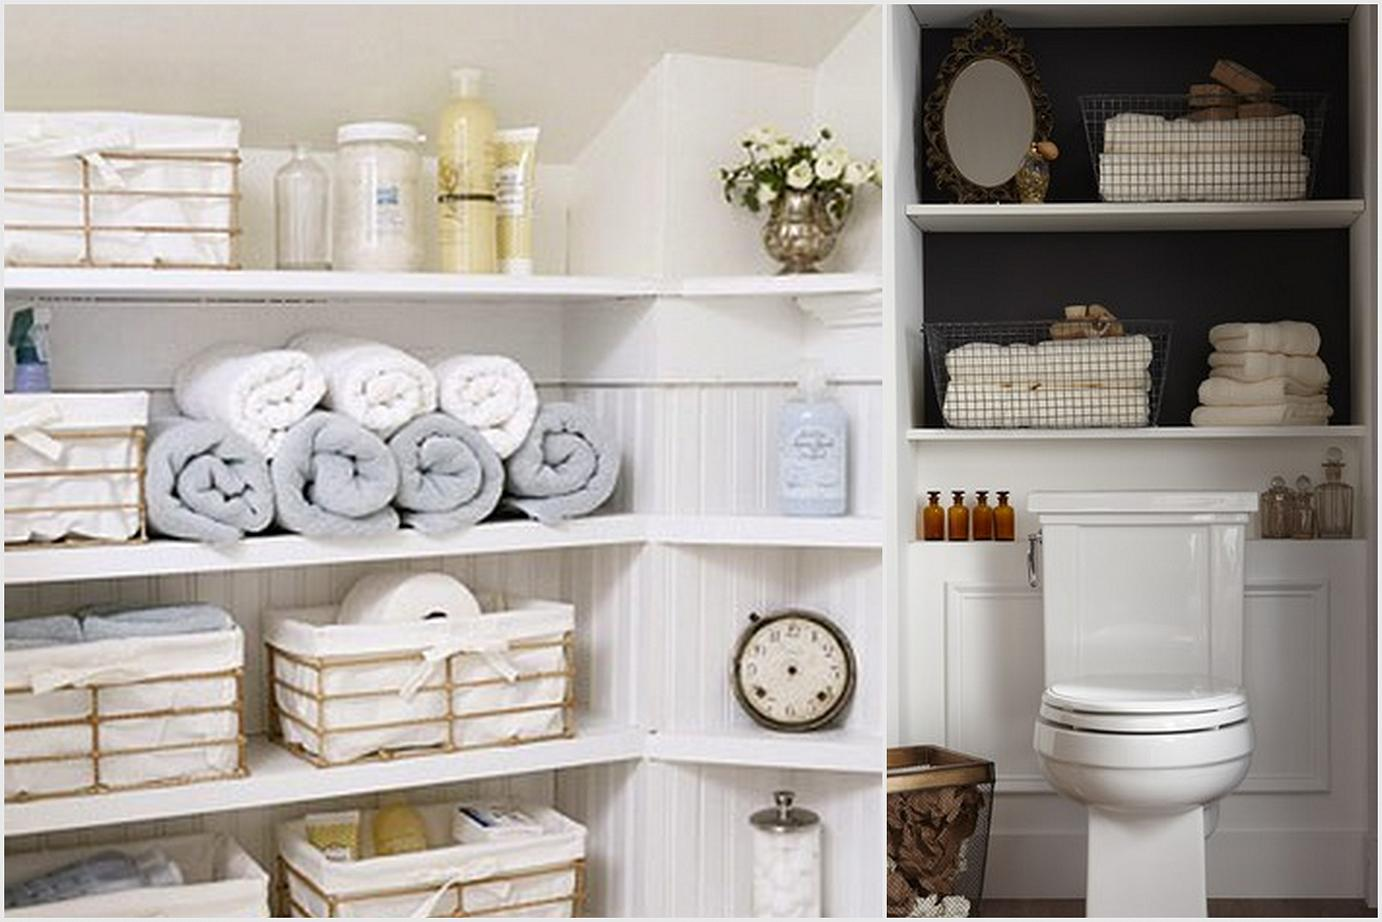 large bathroom closet organizer with additional storage boxes